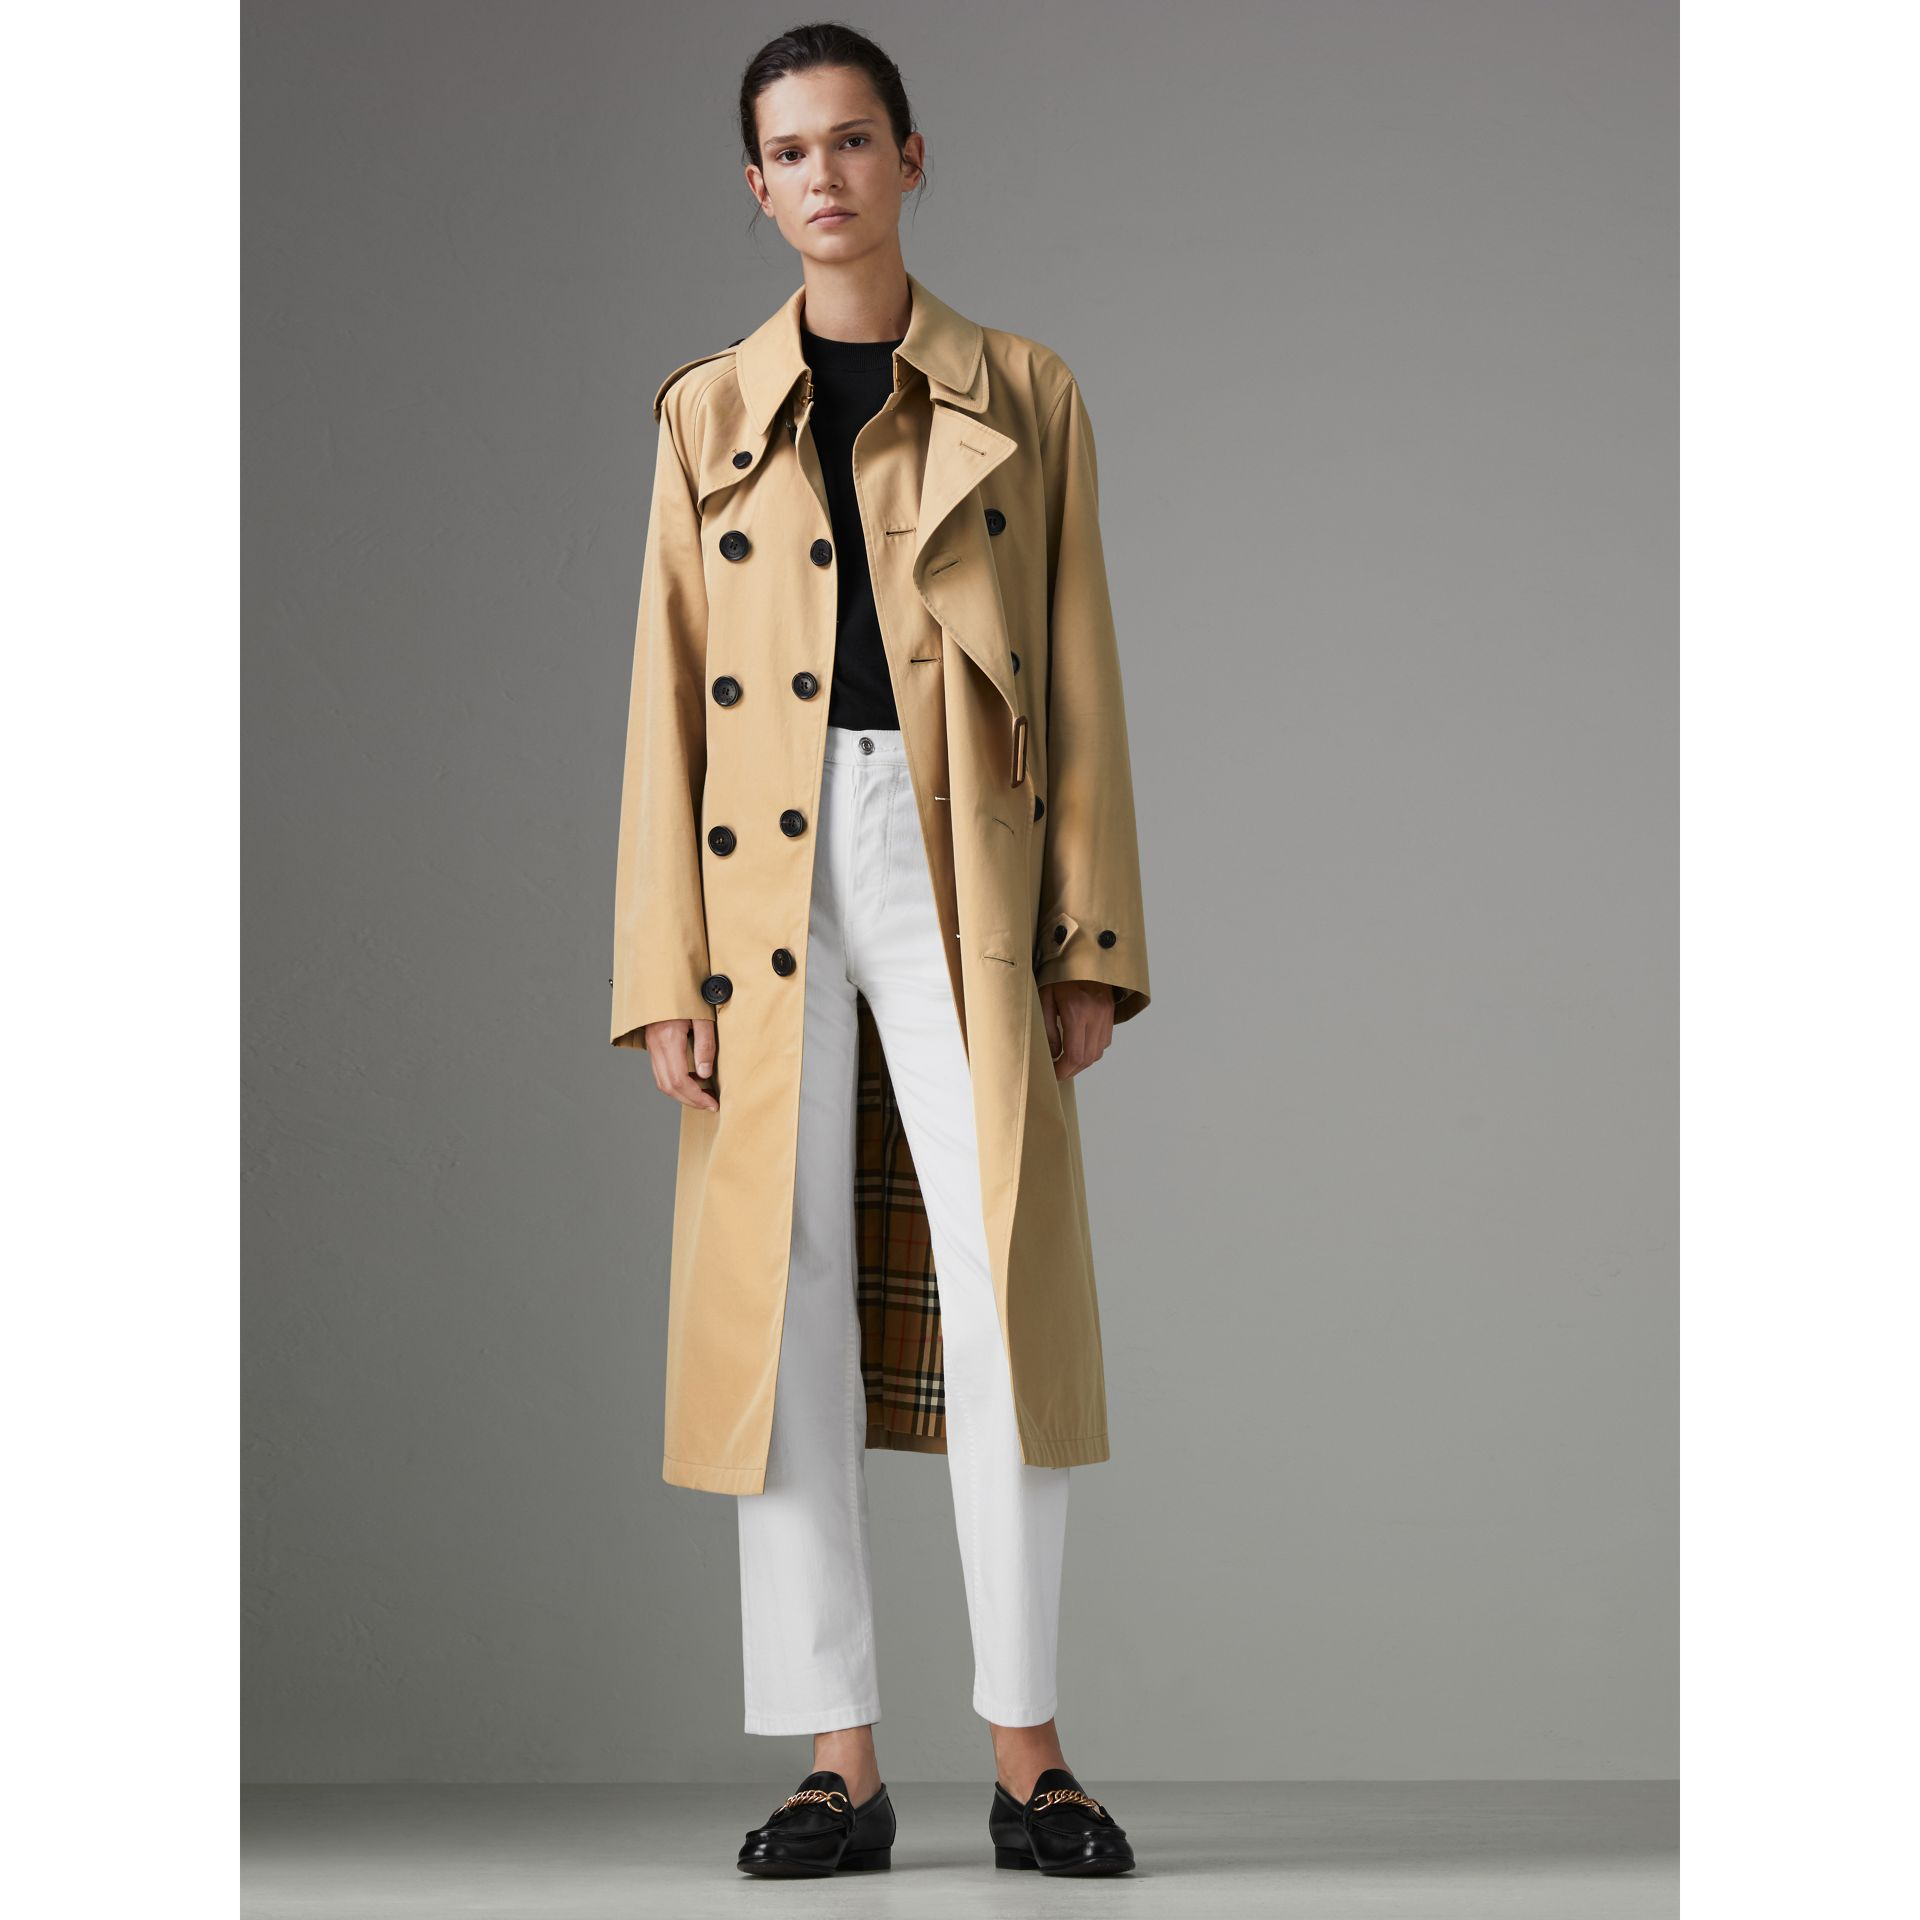 Gosha x Burberry Reconstructed Trench Coat in Honey | Burberry - gallery image 2